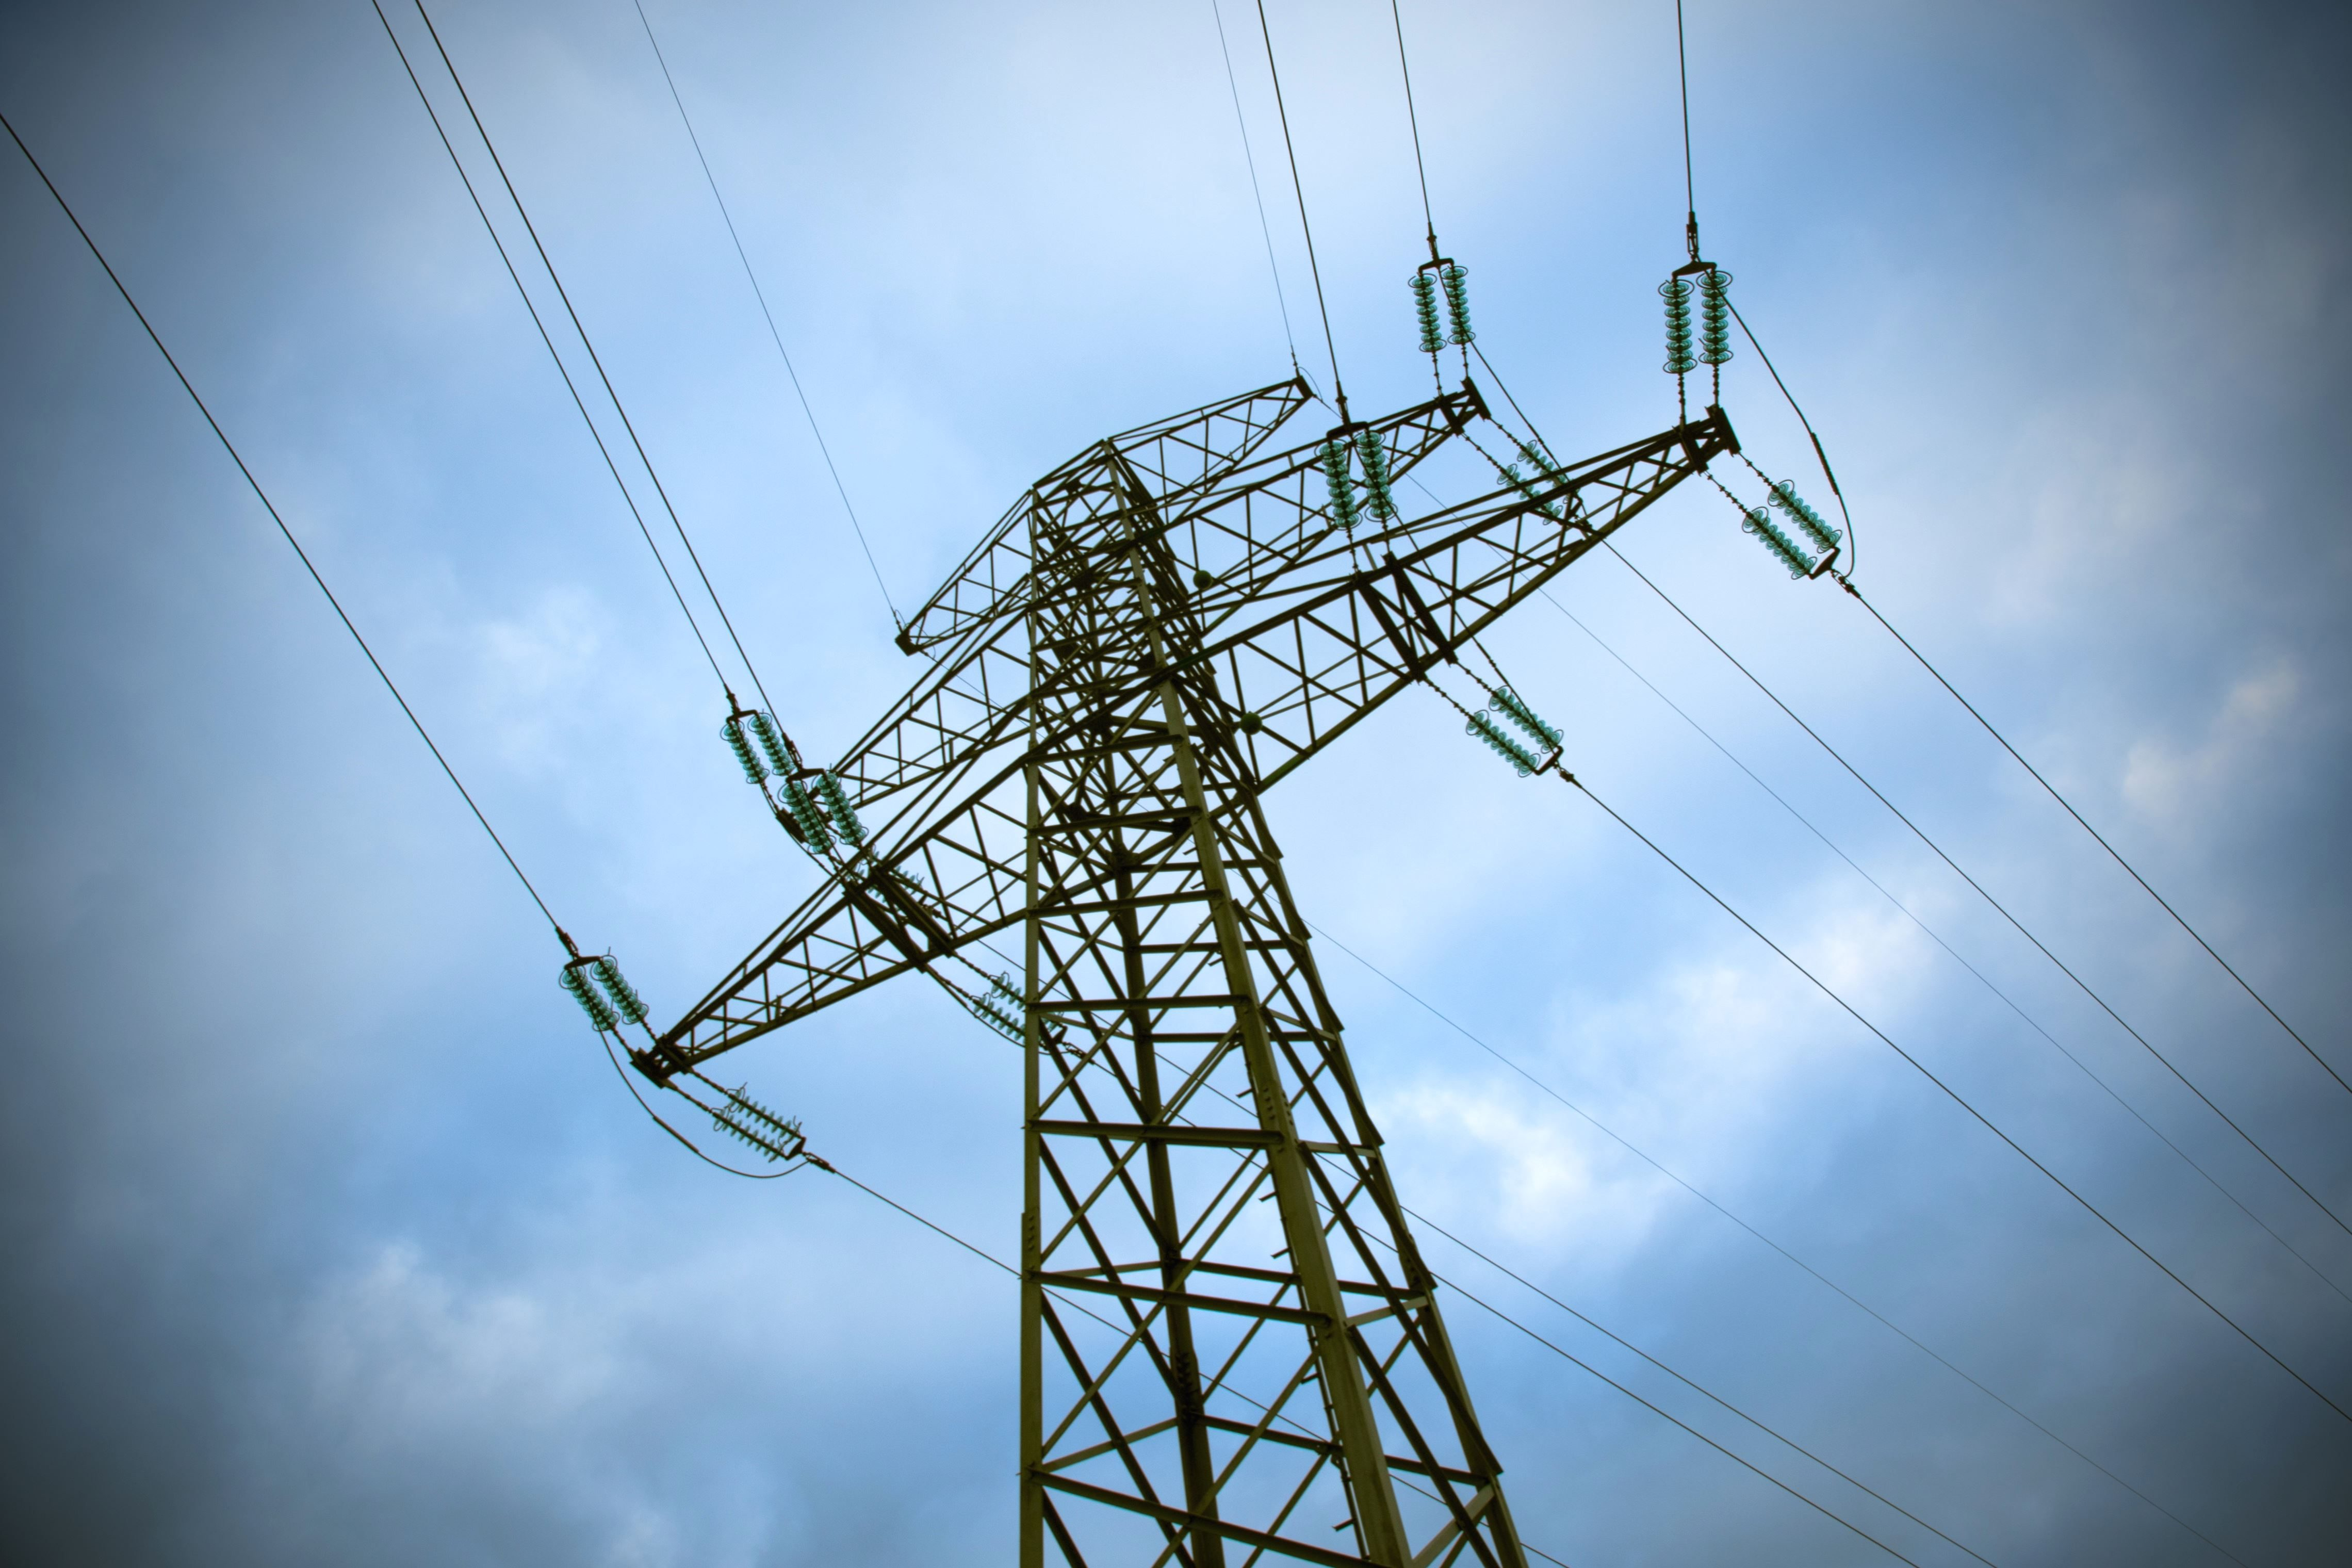 Free picture: voltage, wires, electricity, tower, energy, sky